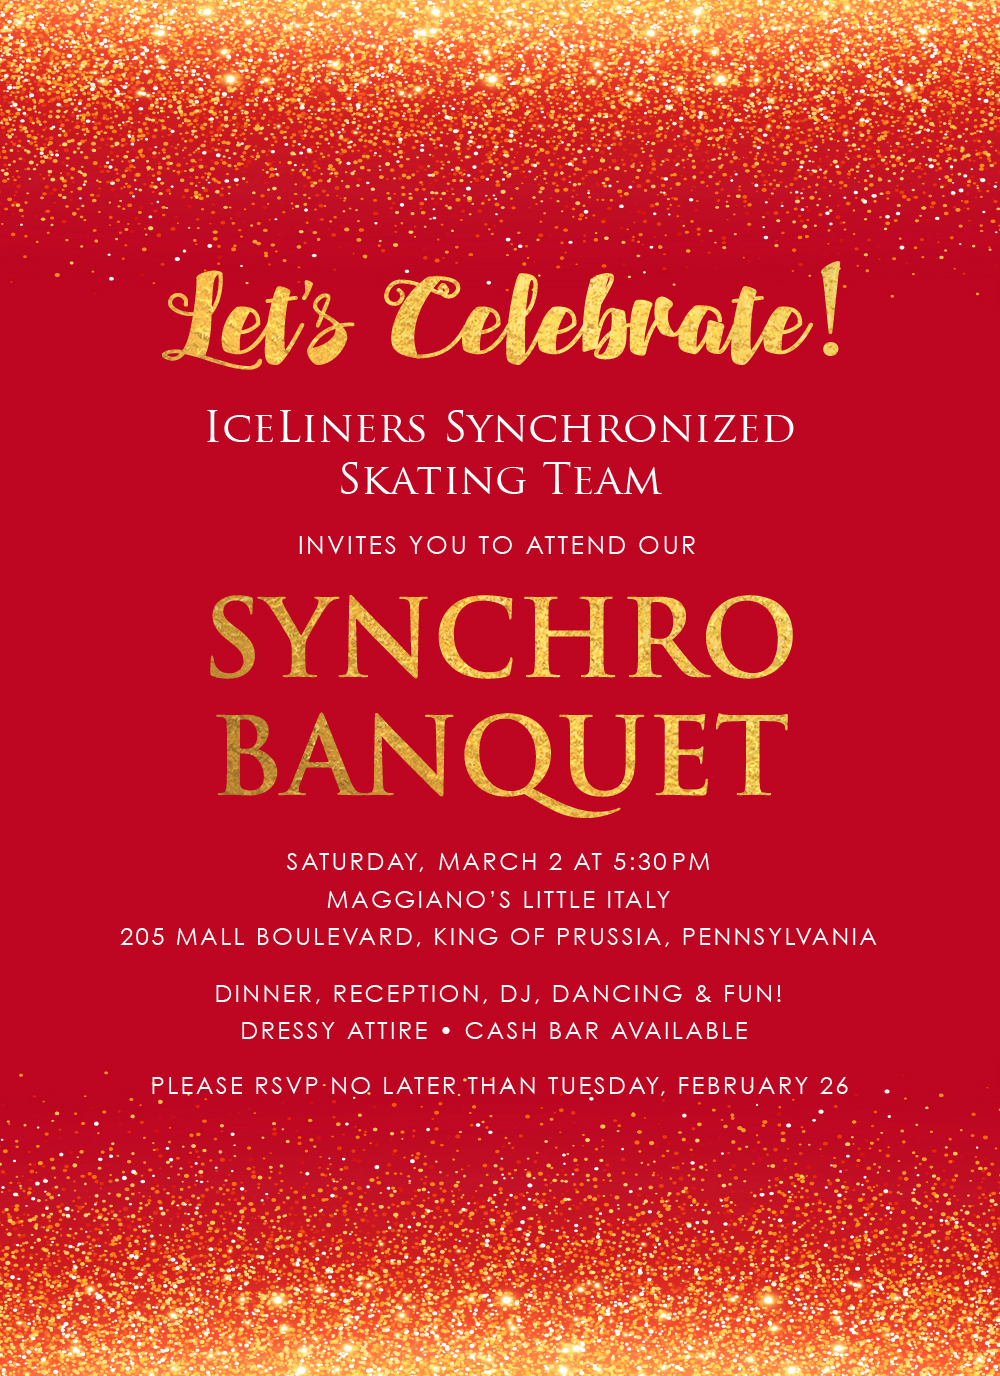 IceLiners Synchronized Skating Banquet Invitation